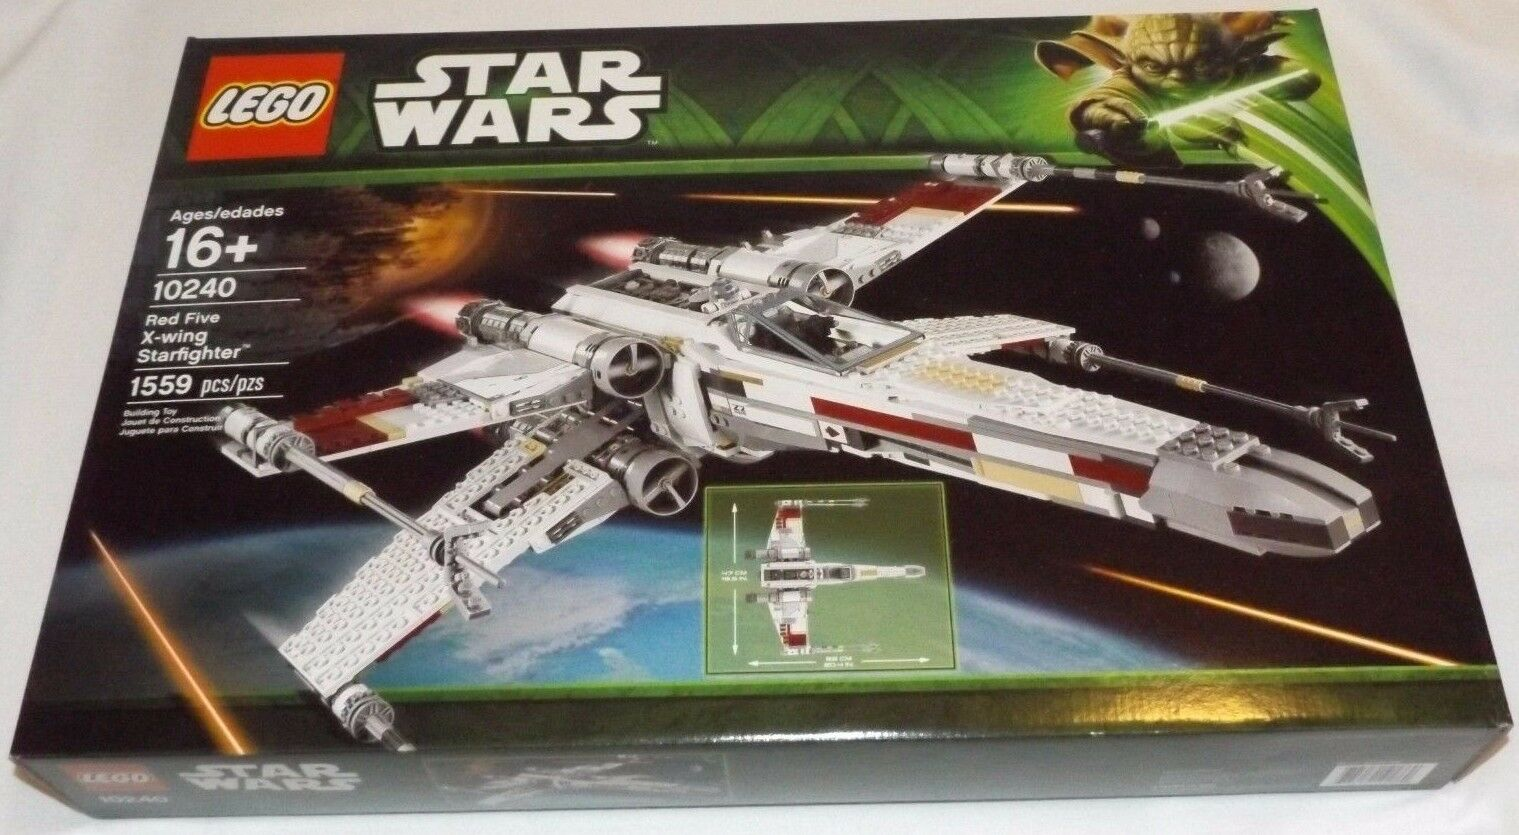 LEGO Star Wars rosso FIVE X-WING STARFIGHTER 10240 R2-D2 UCS Ultimate Collector 5